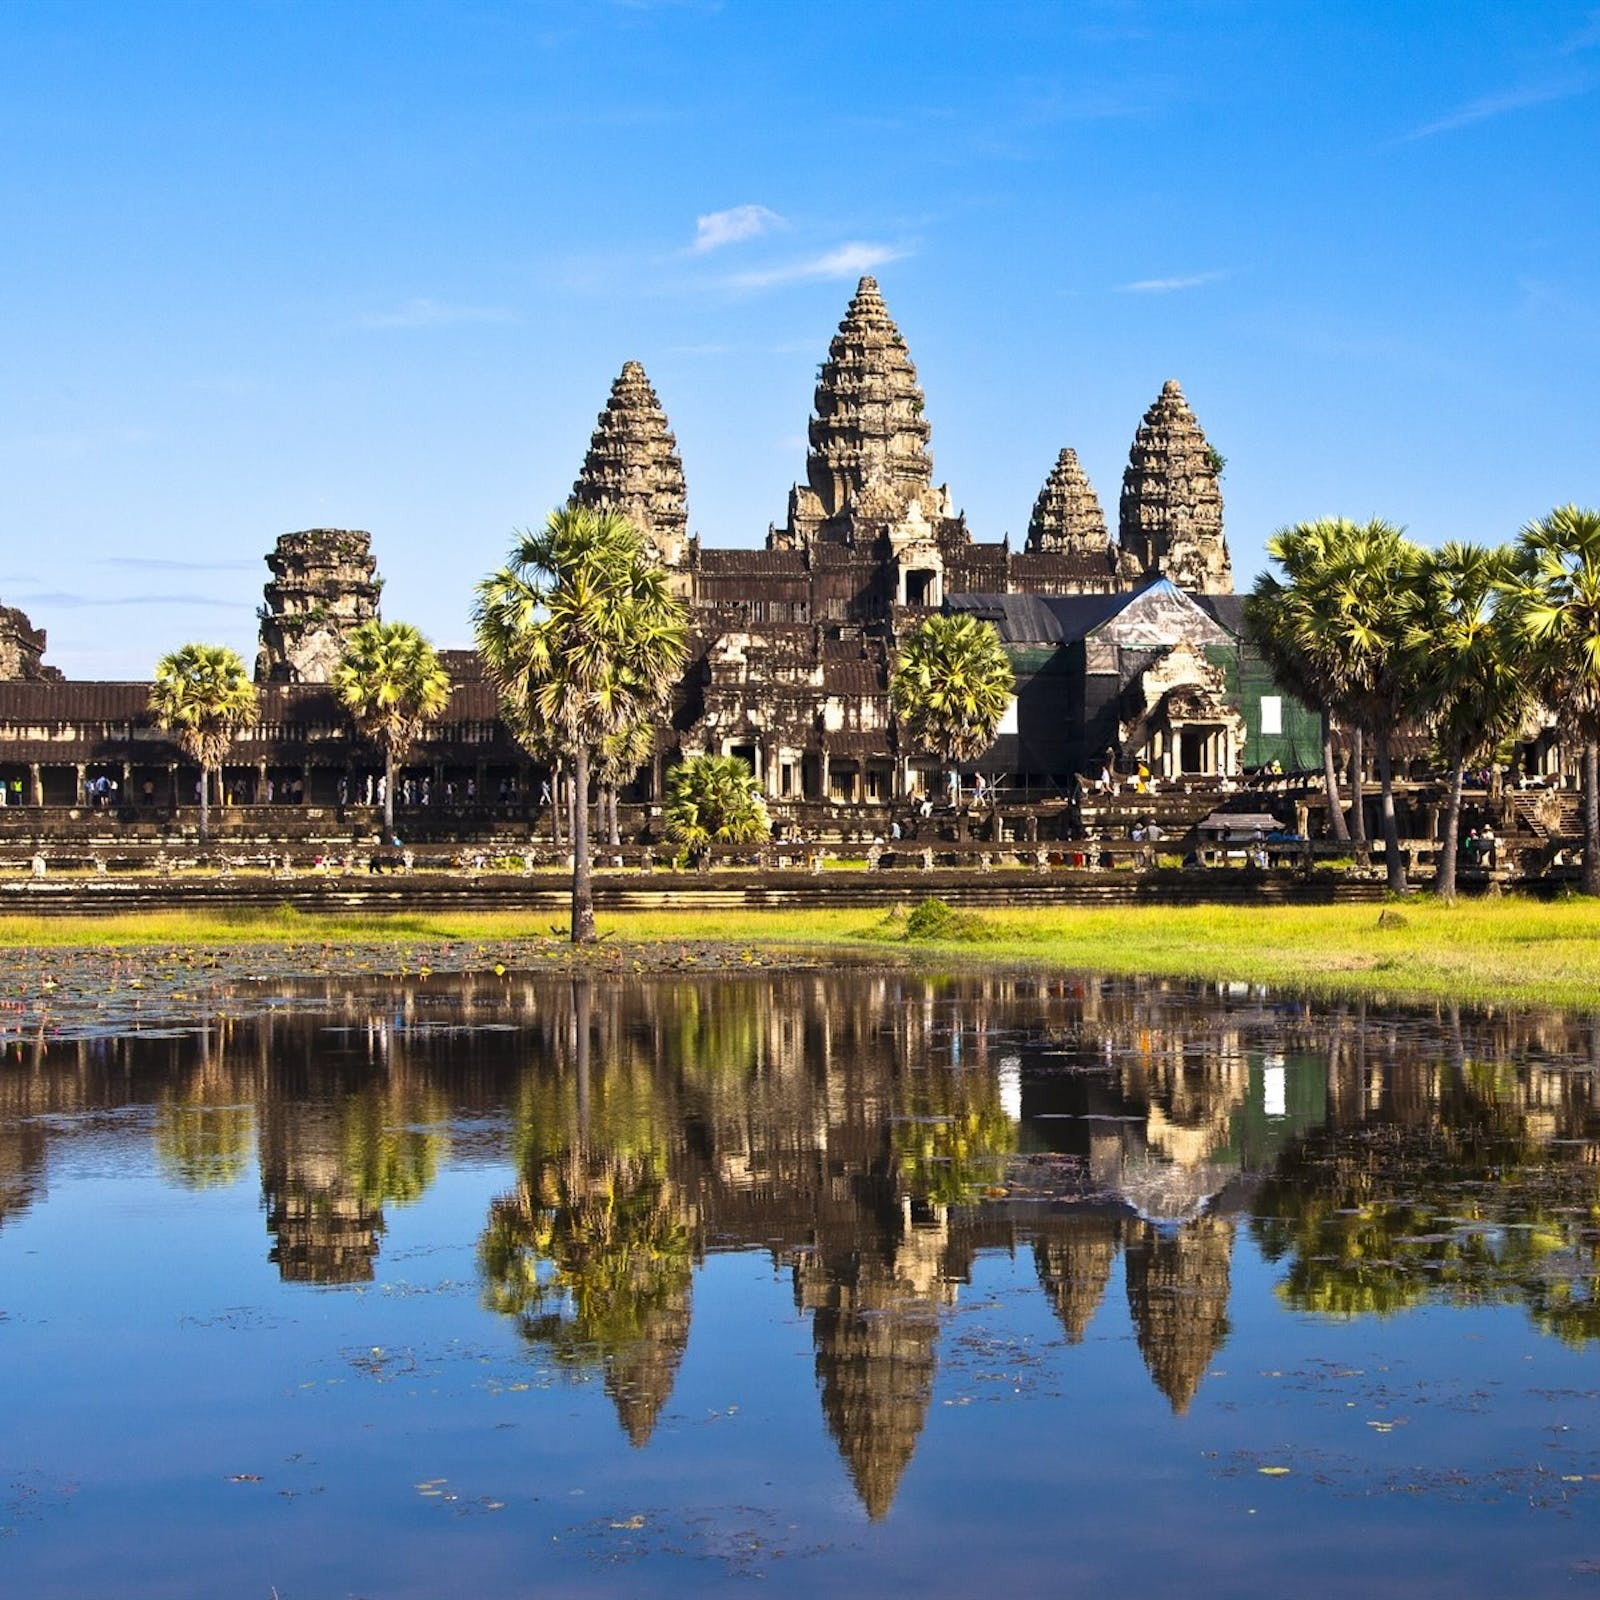 Siem Reap - The Temples